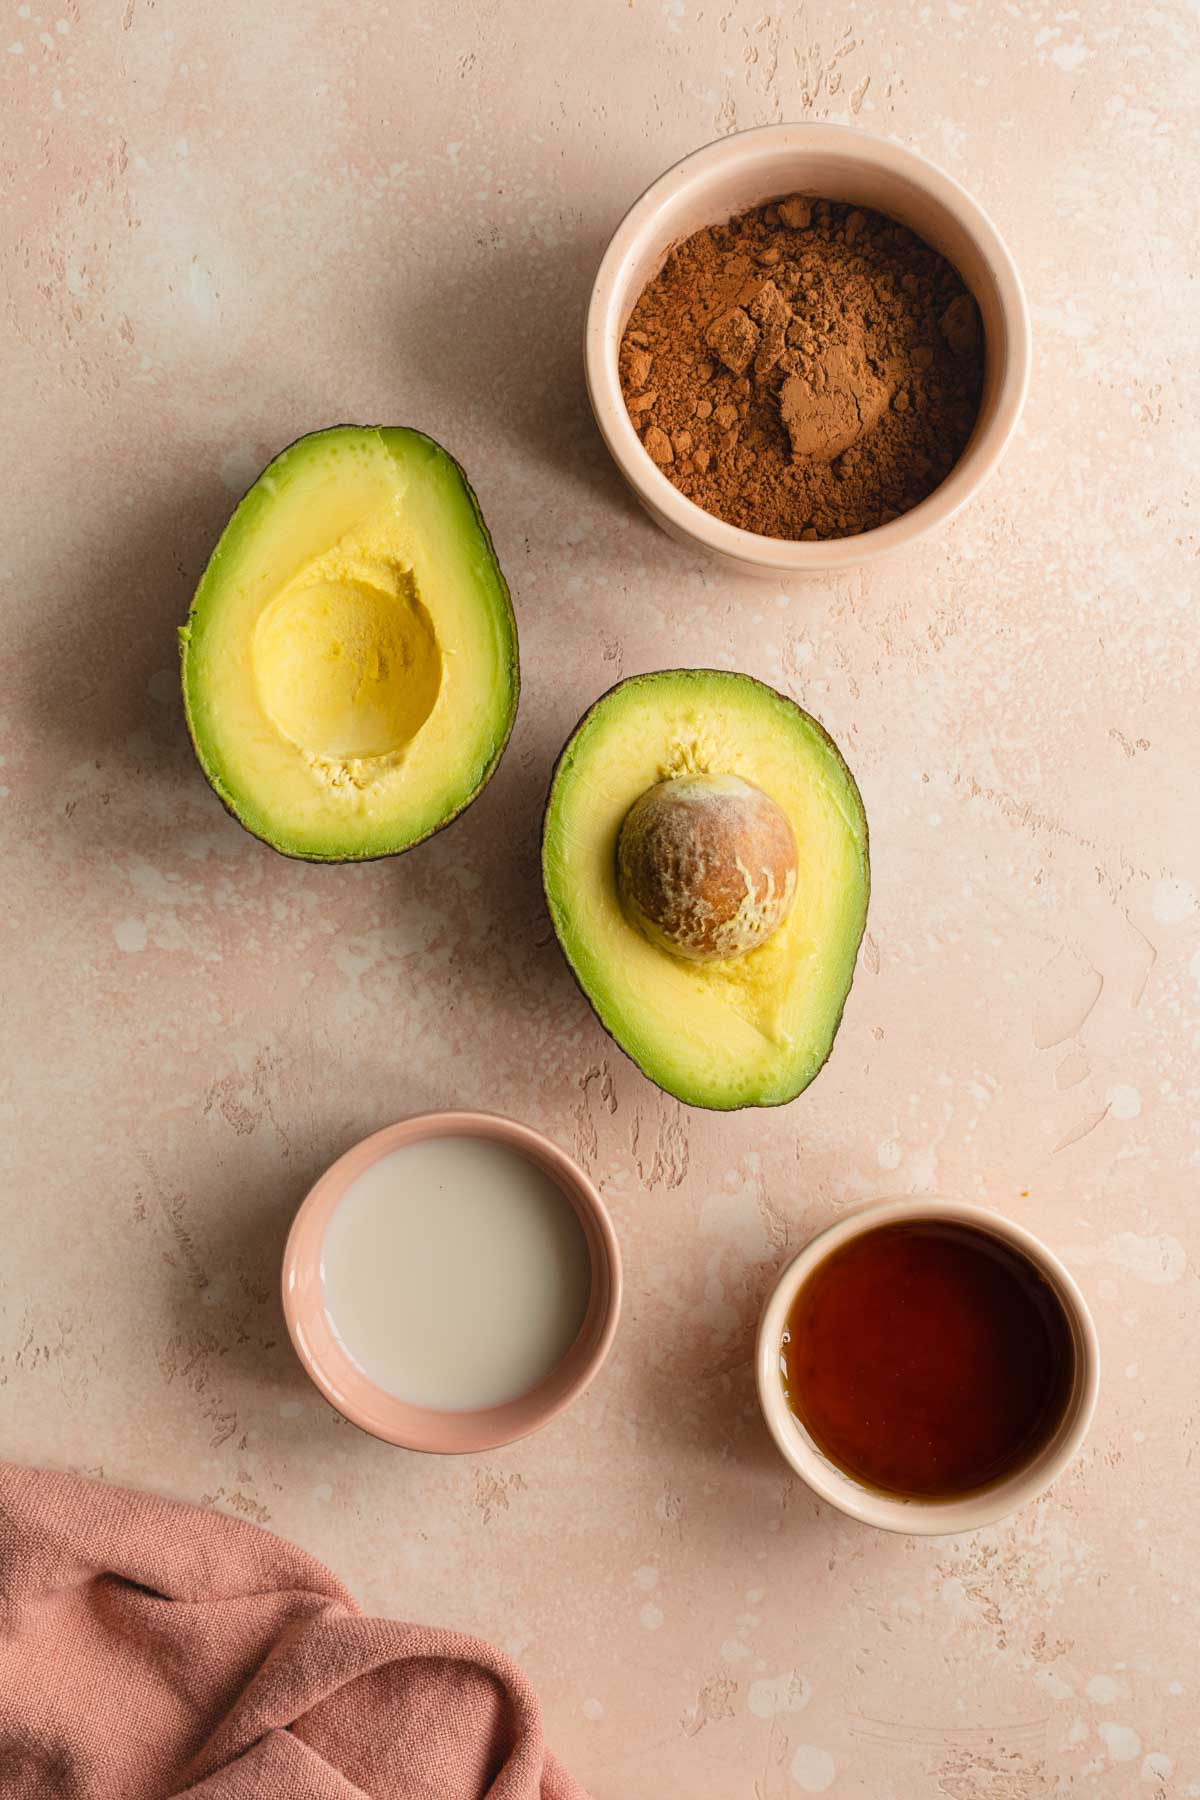 Ingredients to make chocolate avocado frosting arranged individually.